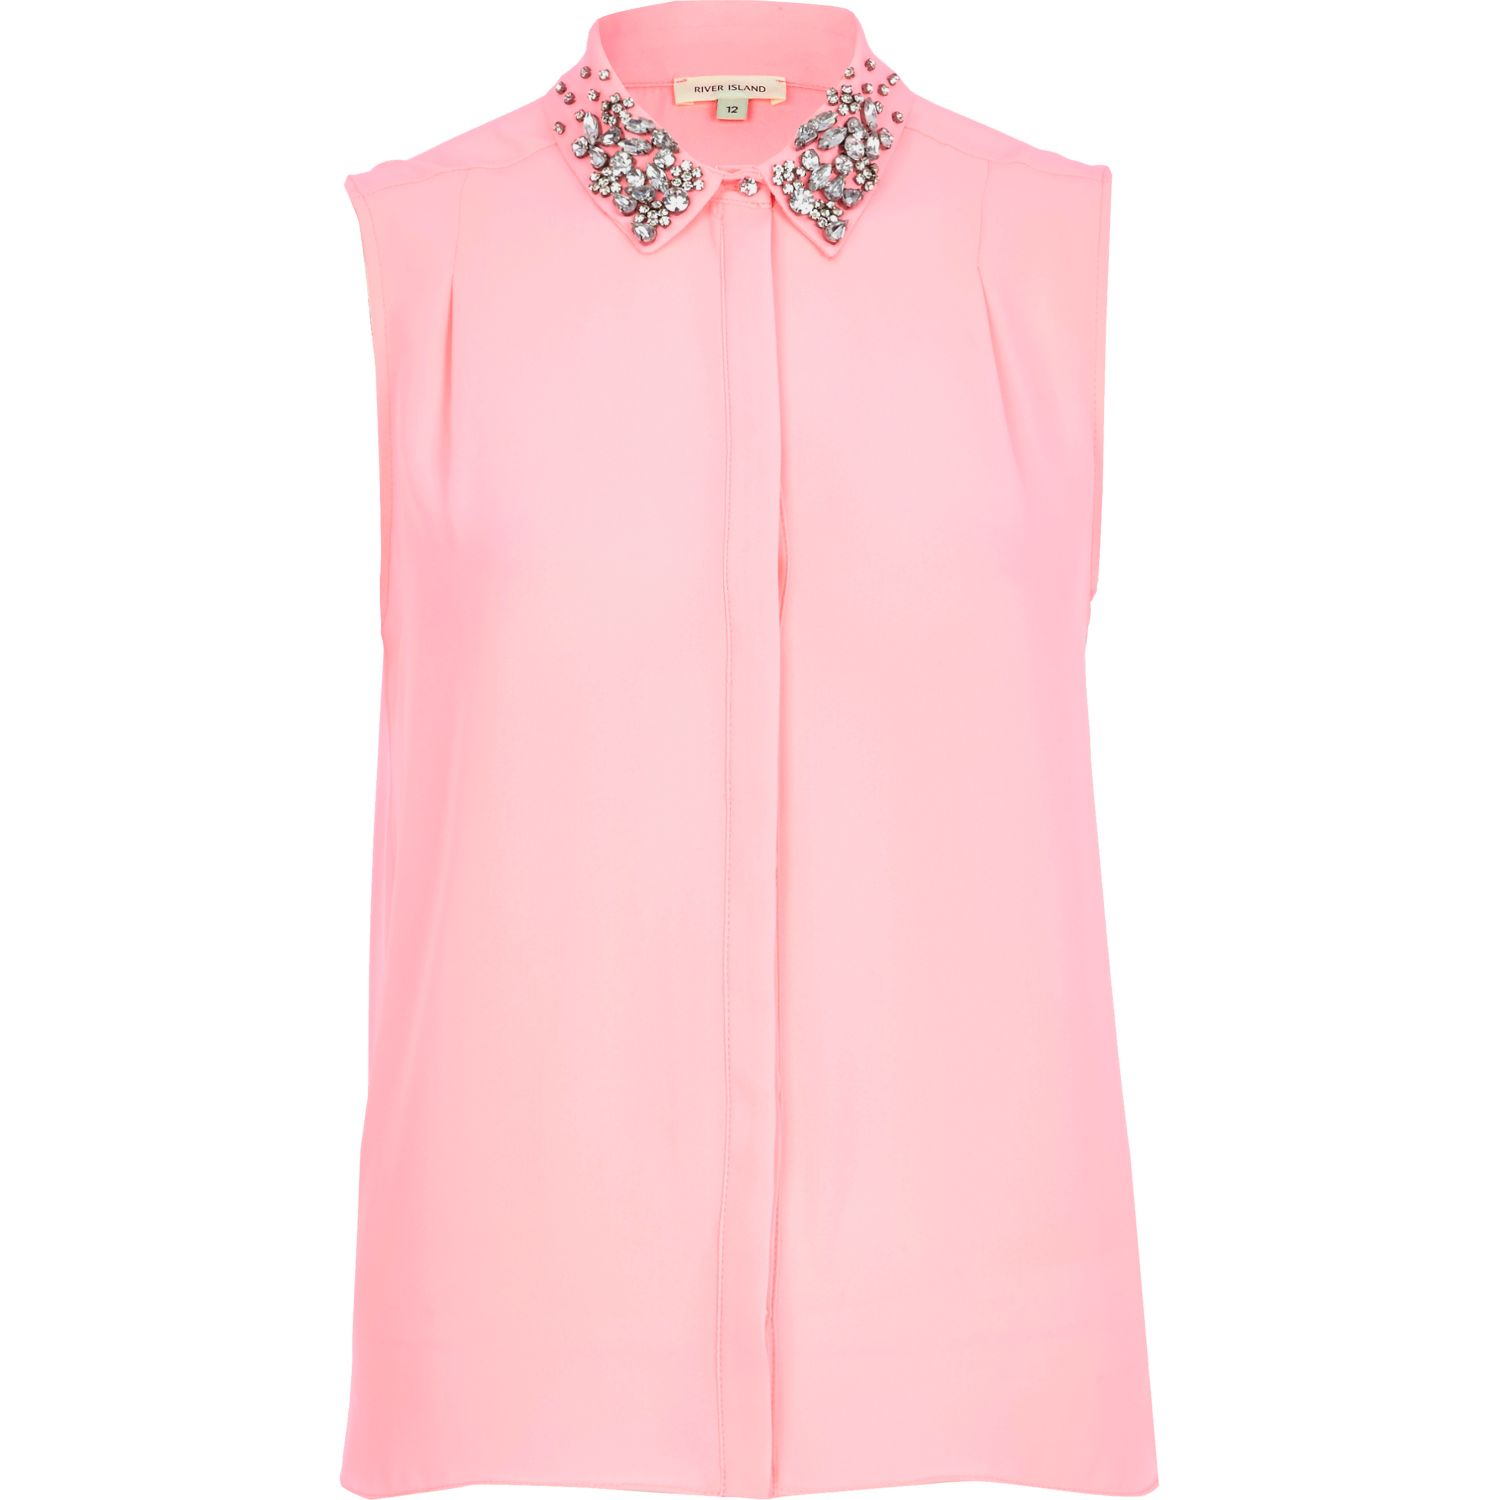 River Island Pink Embellished Collar Sleeveless Shirt In